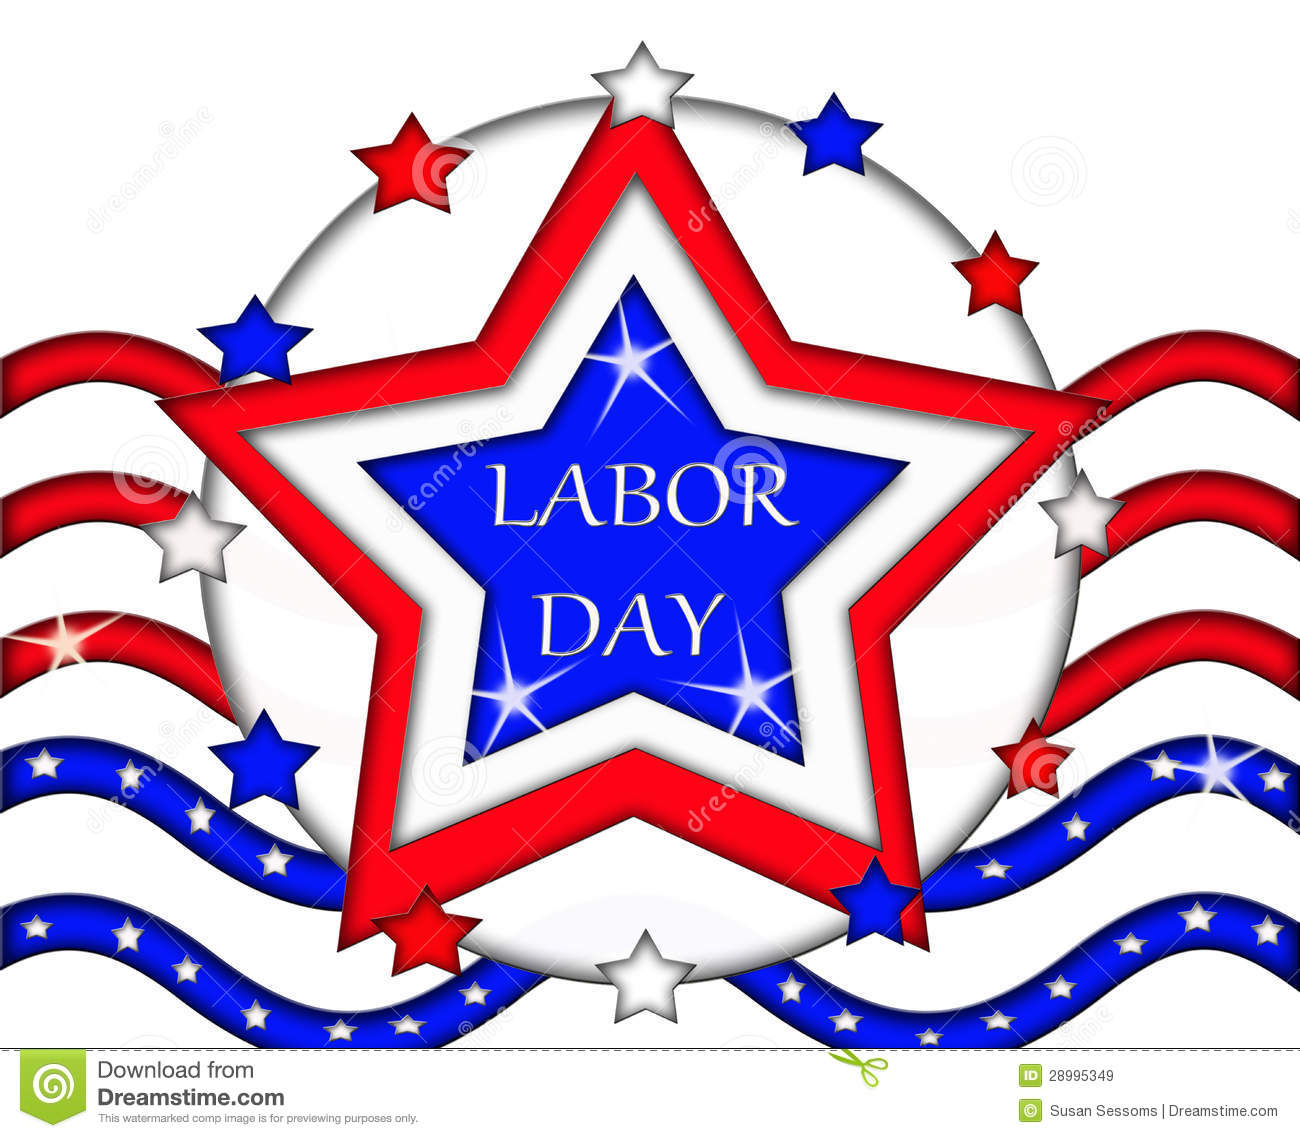 Labor day clipart clipart banner free download Labor Day Clipart - Clipart Kid banner free download